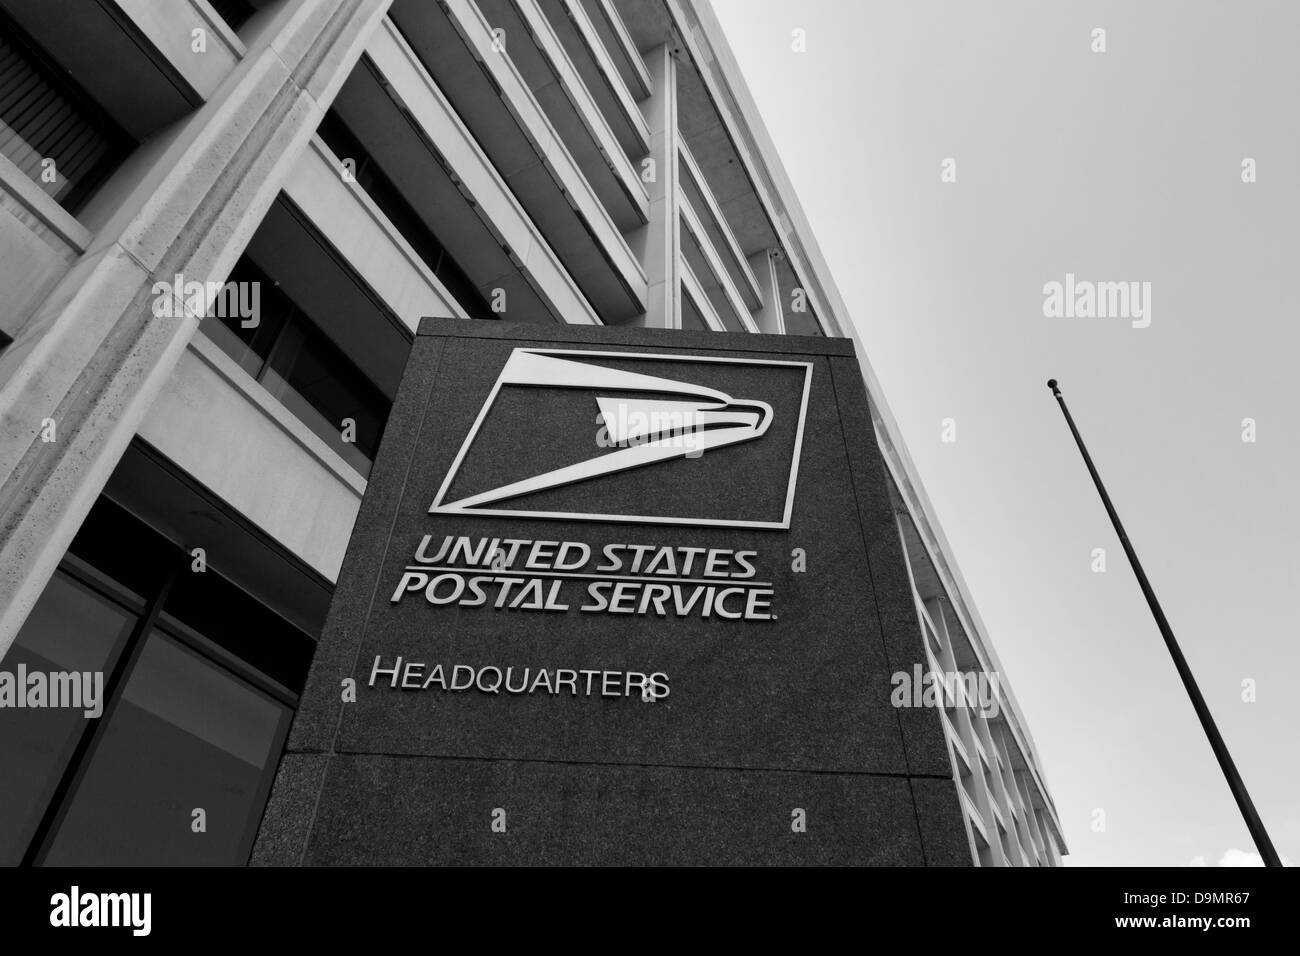 The US Postal Service headquarters building - Washington, DC USA - Stock Image